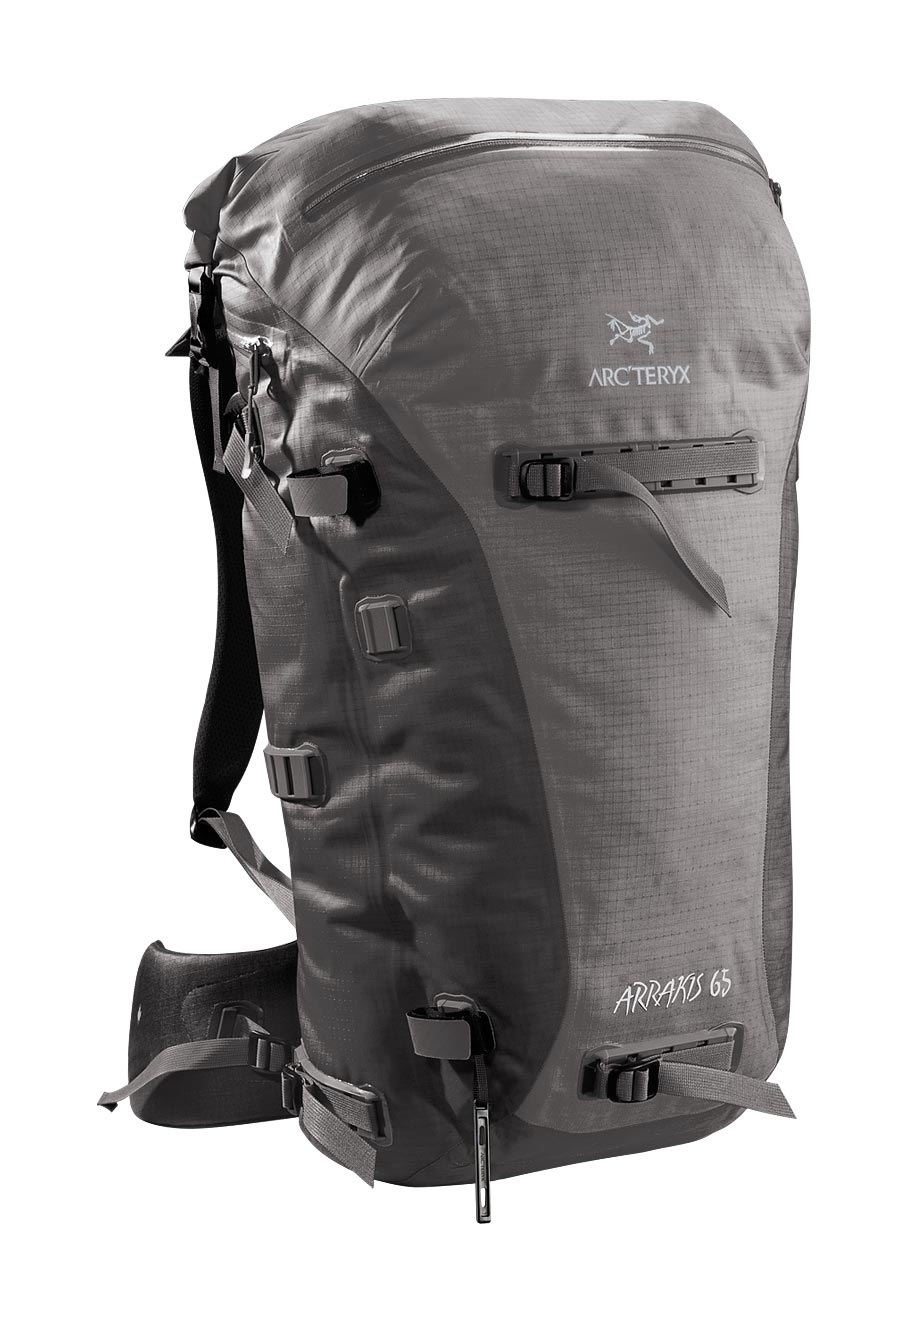 Arcteryx Black bird Arrakis 65